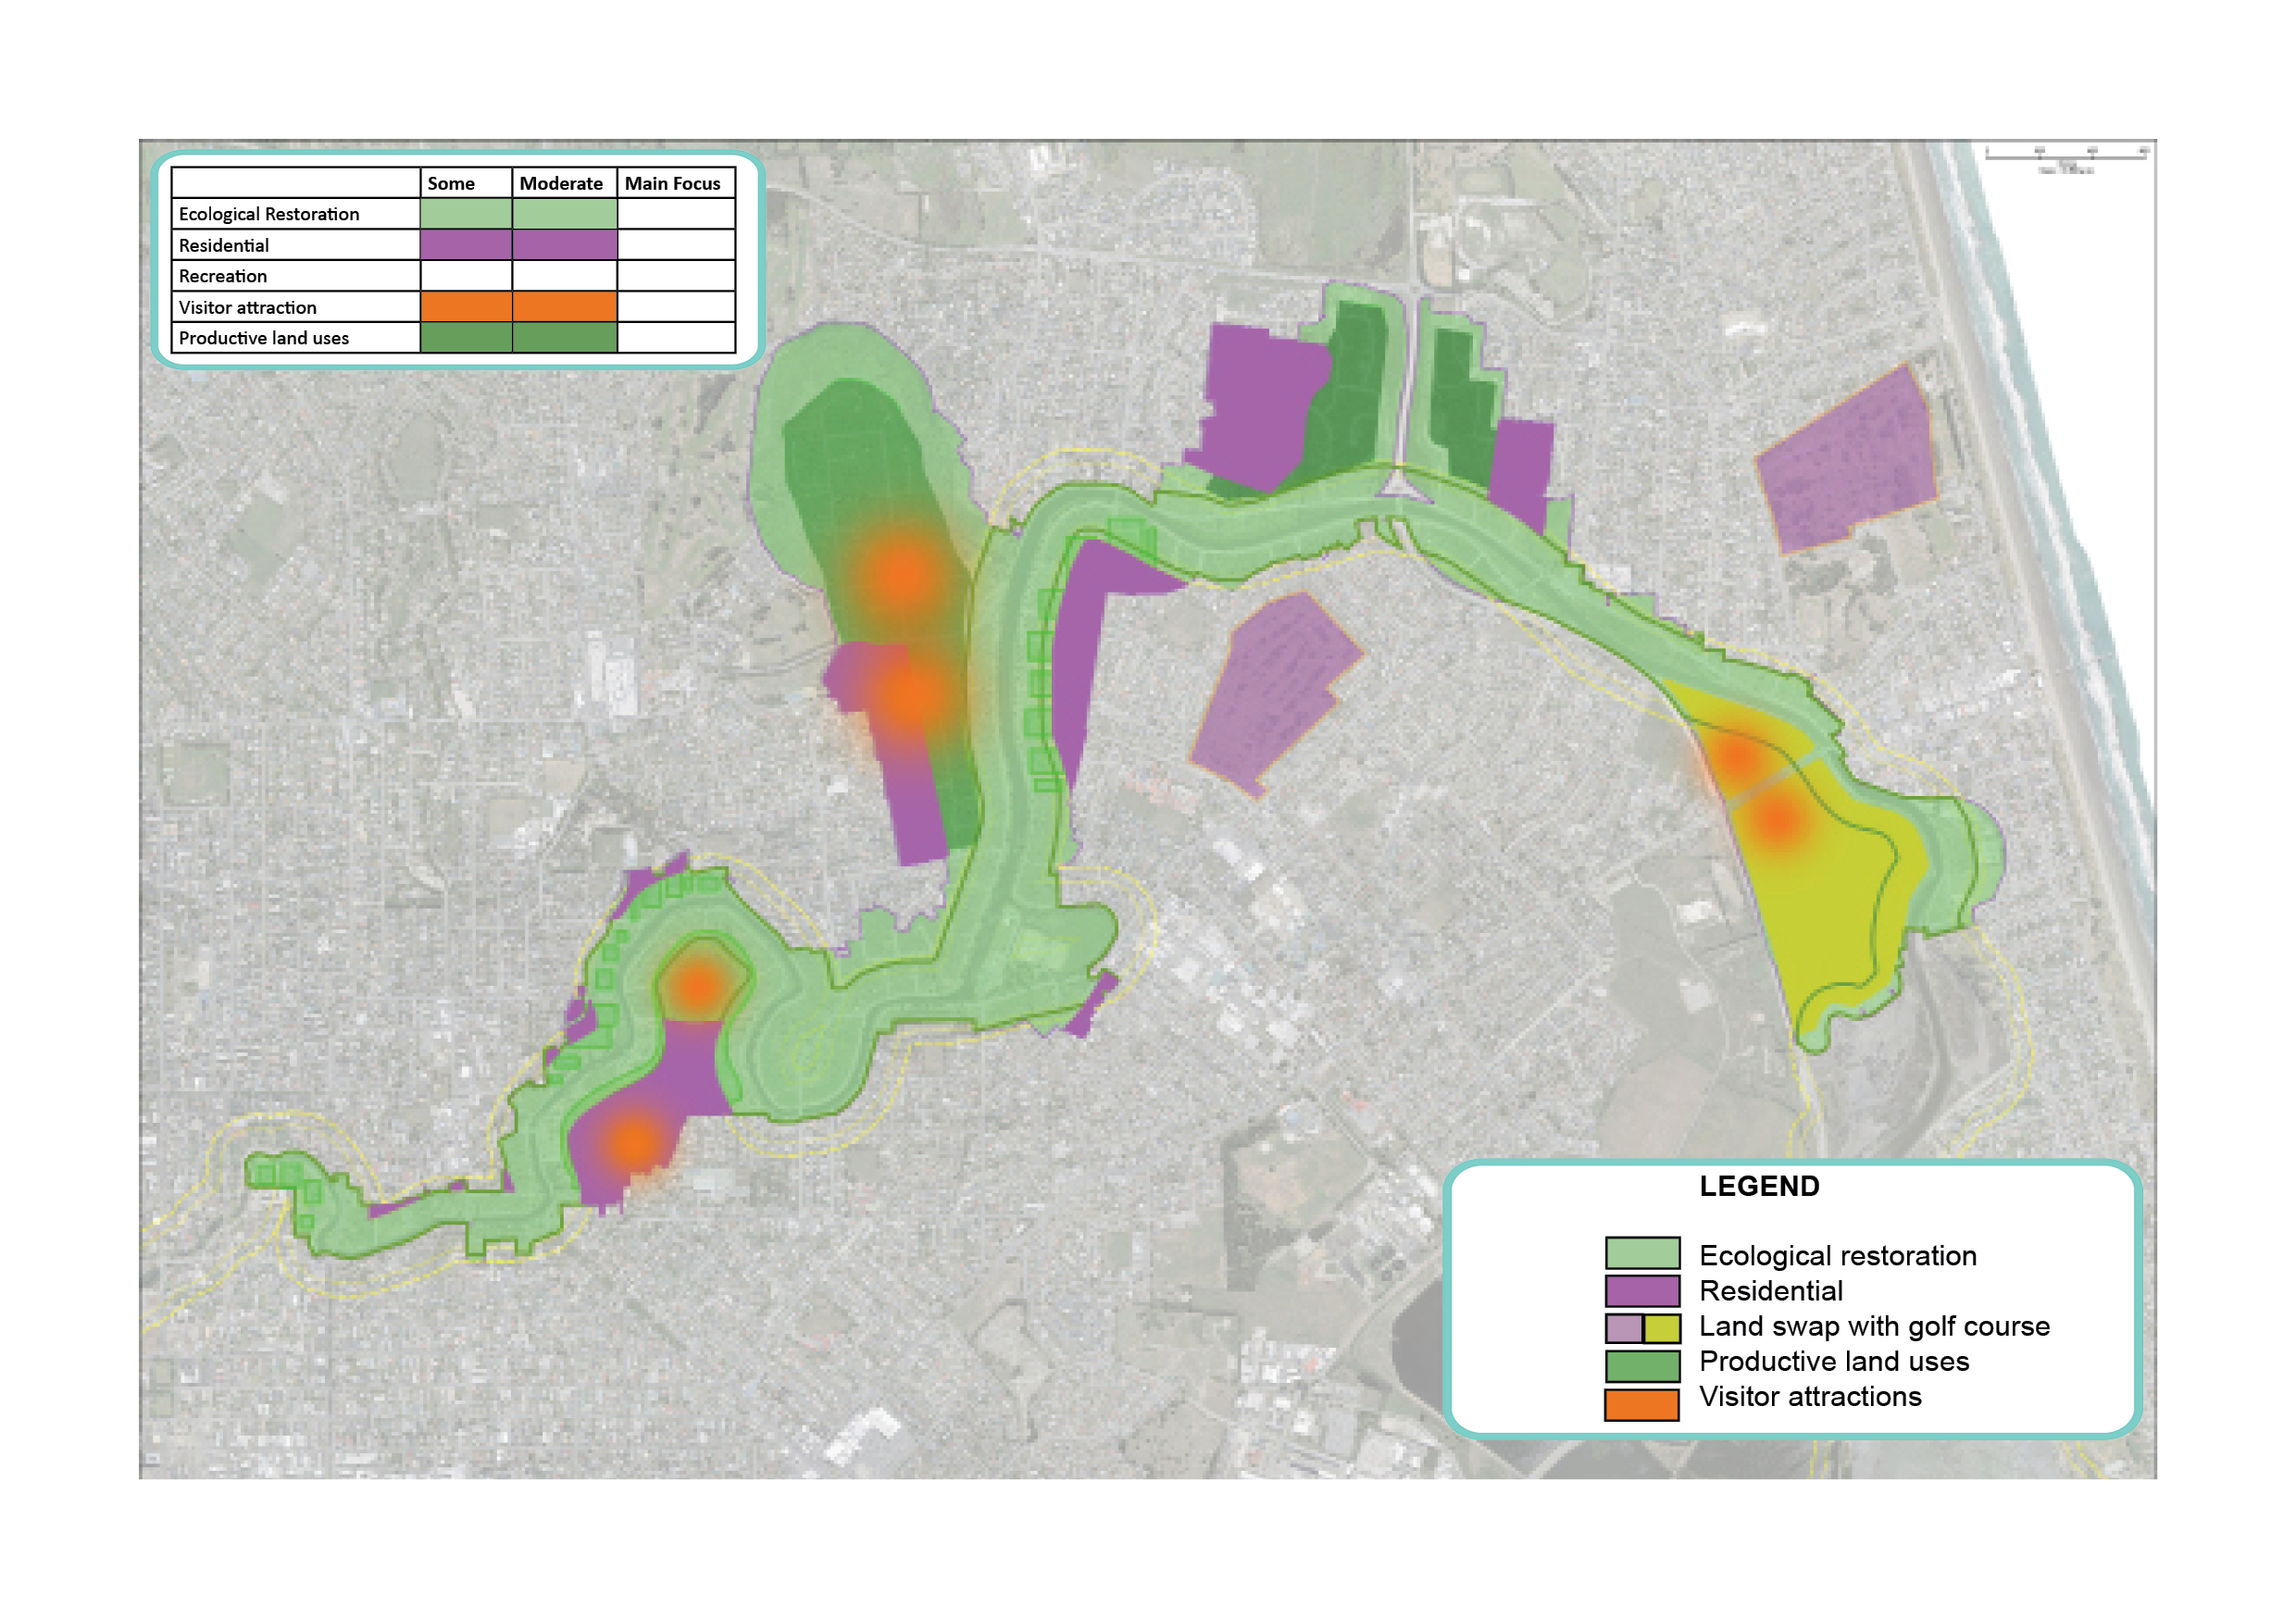 Map showing potential areas for productive land uses, residential, visitor attraction and ecological restoration in Ōtākaro Avon River Corridor Regeneration Area.